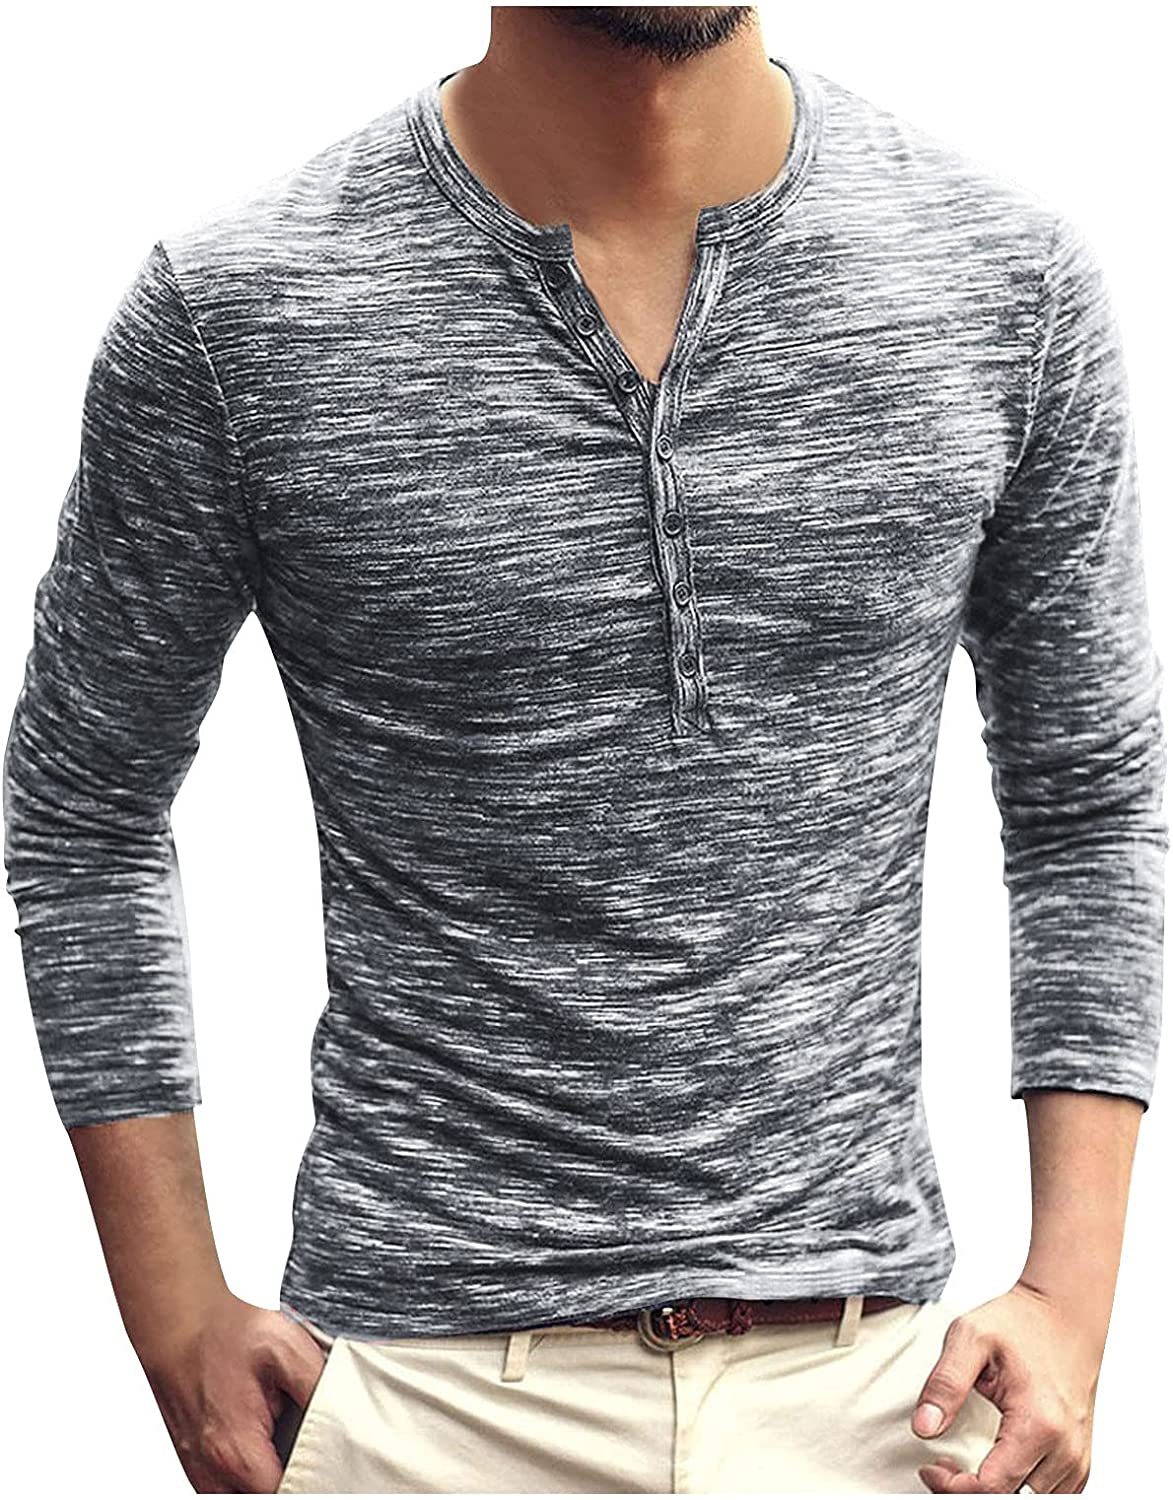 Aayomet Men's T Shirts Long Sleeve Slim Fit Button Down Henley T-Shirt Casual Sport Workout Athletic Tee Tops Shirts